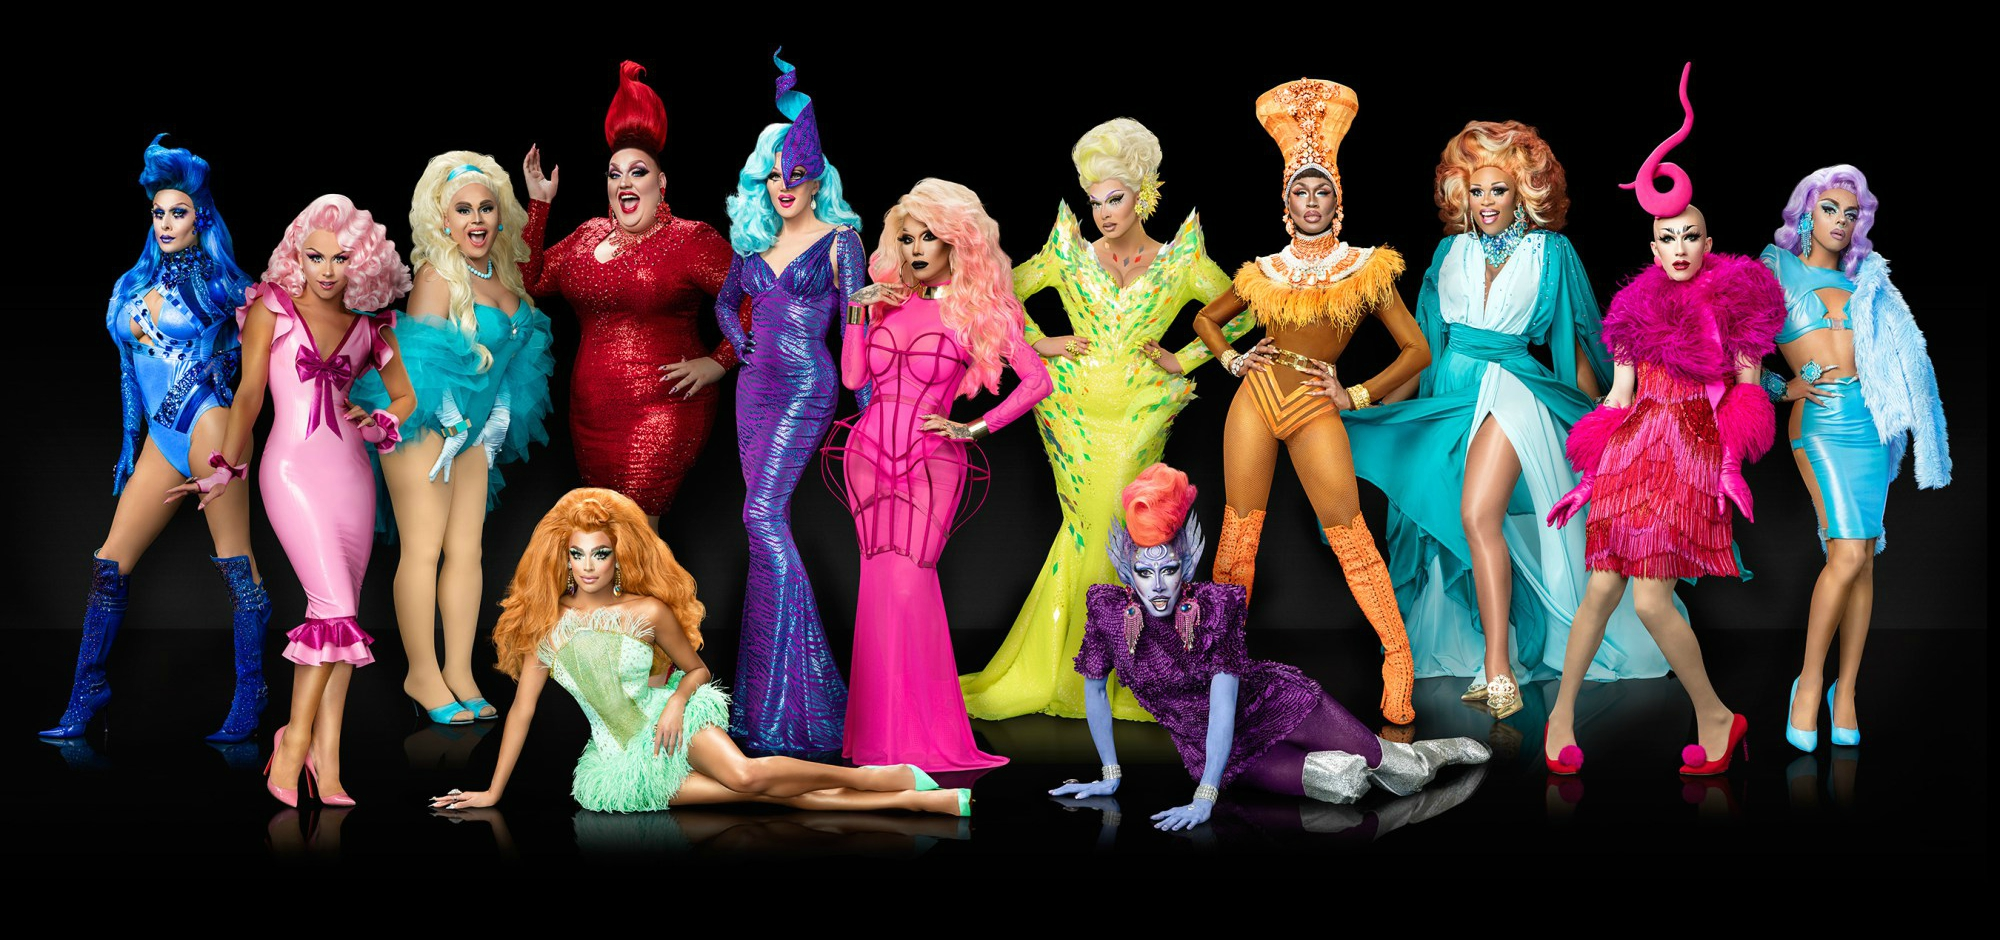 RuPaul's Drag Race Season 9